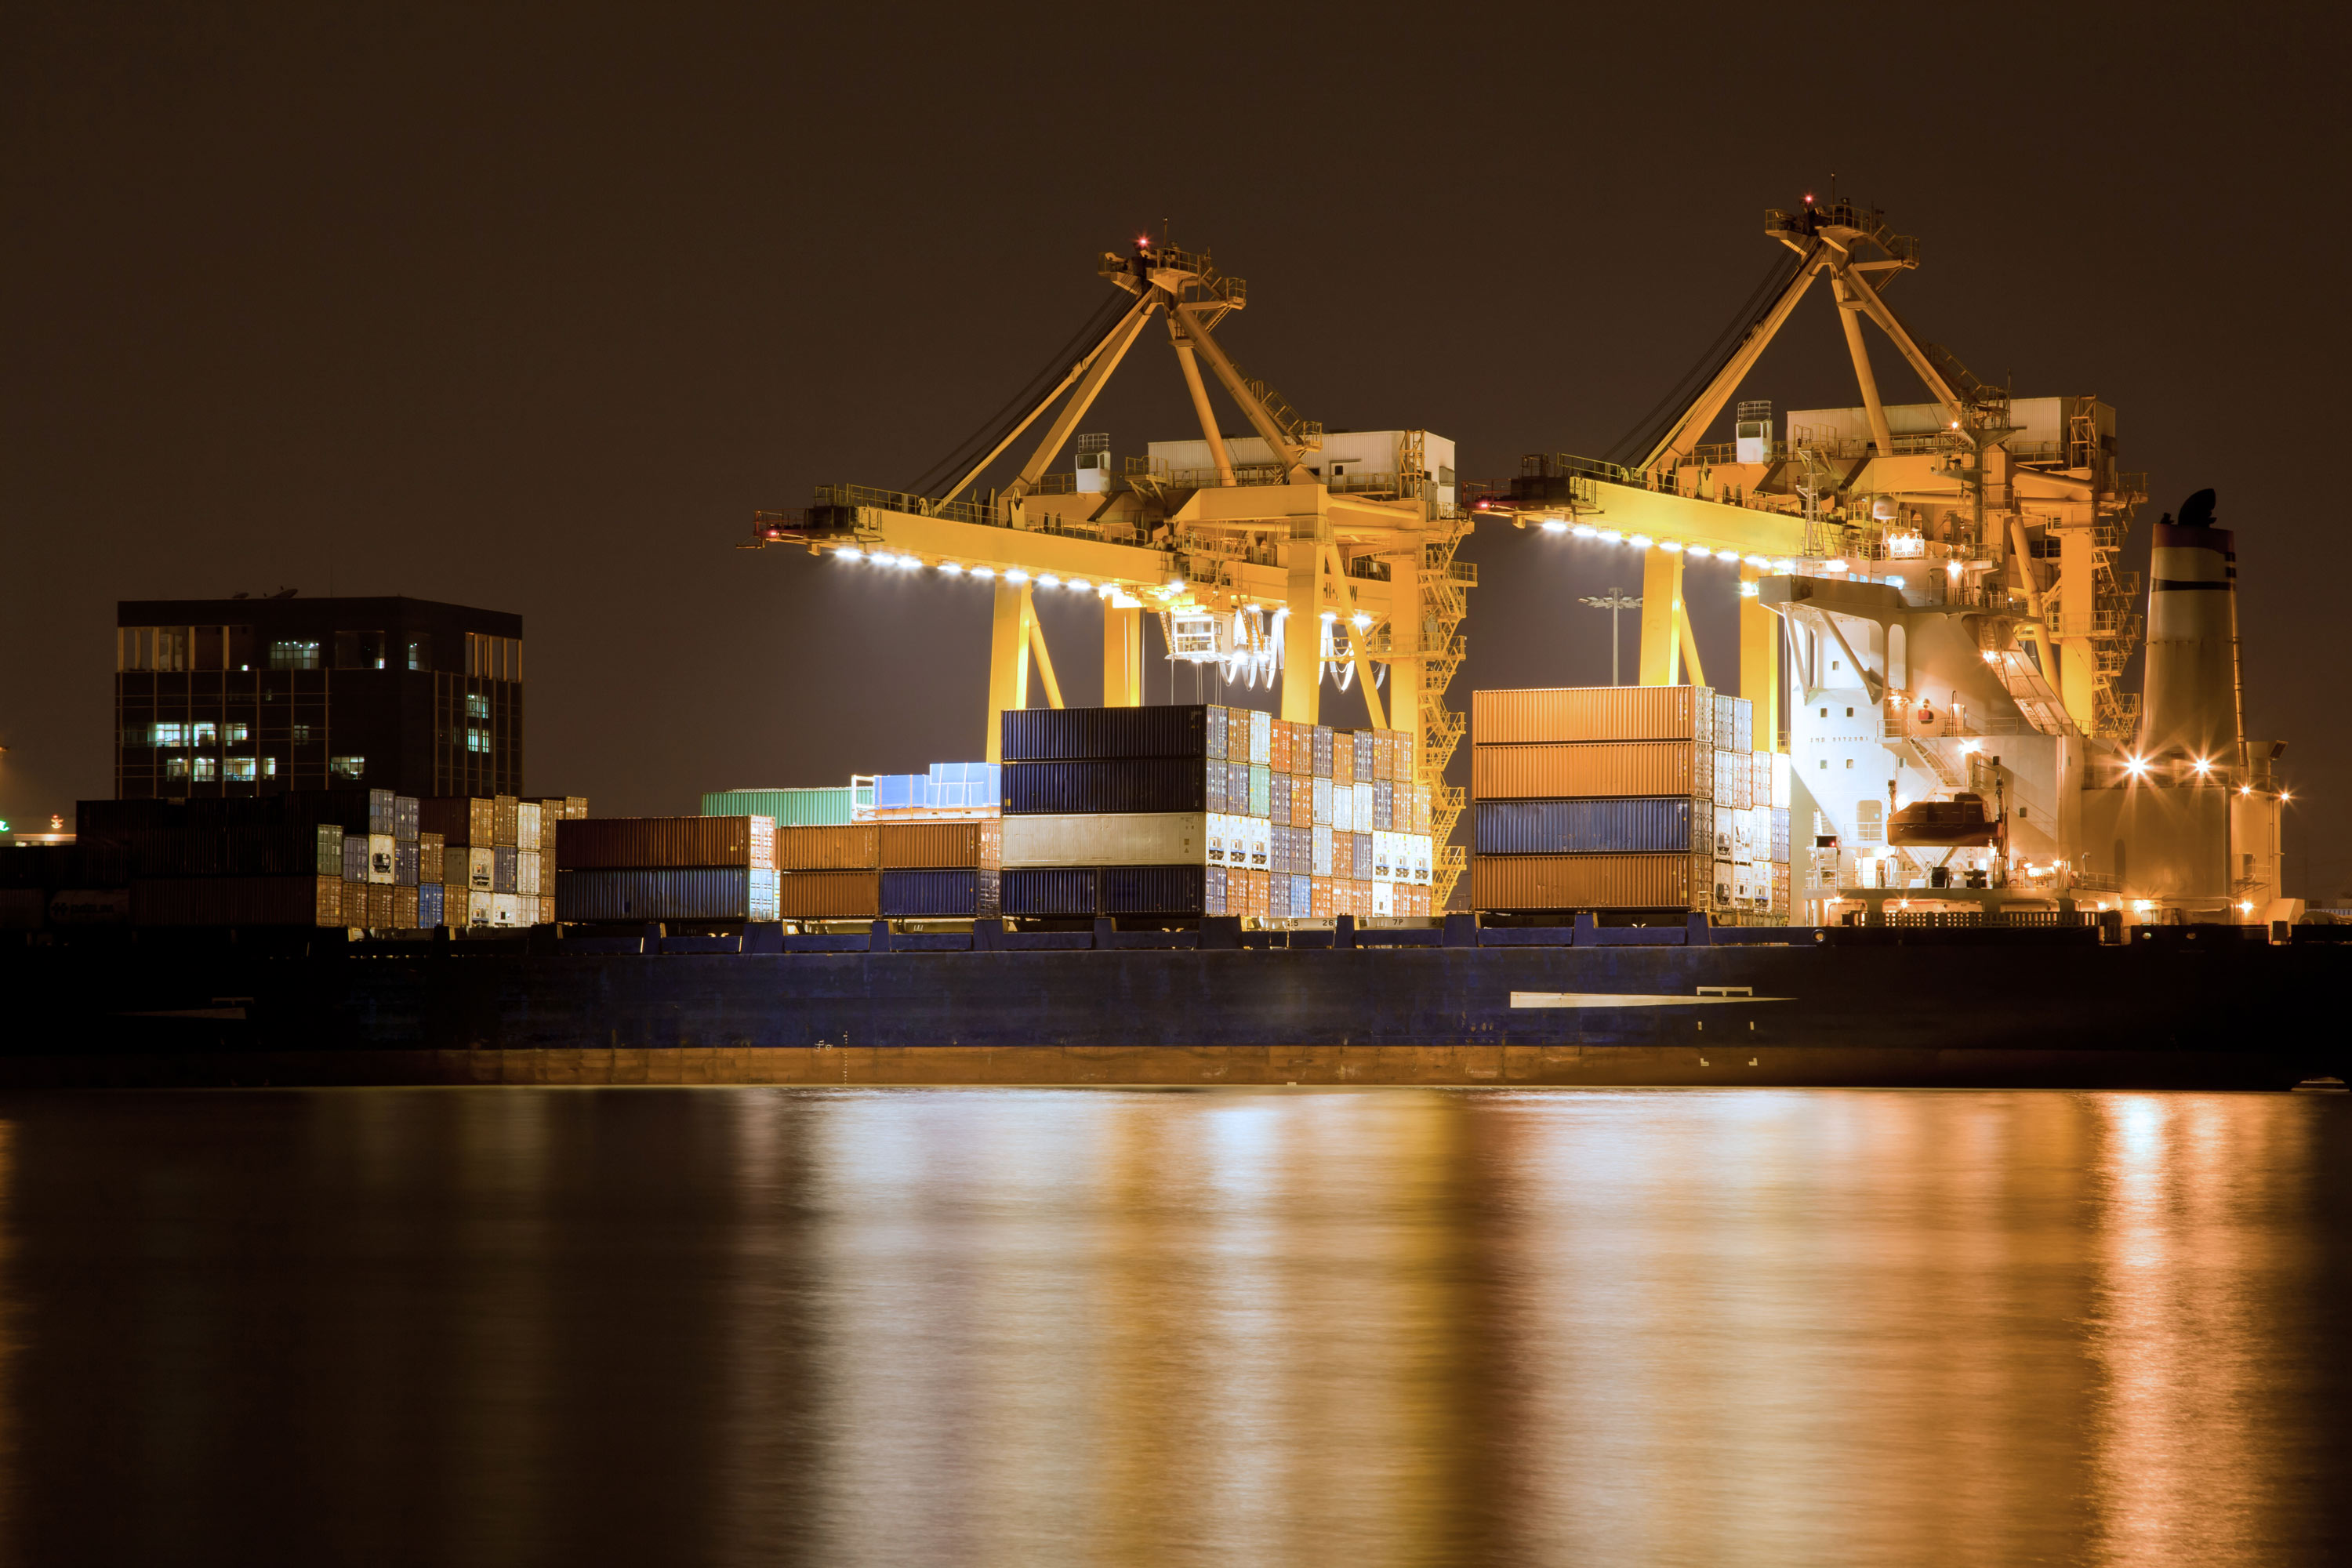 Sea freight with Tomsetts pallet distribution pictured at night.